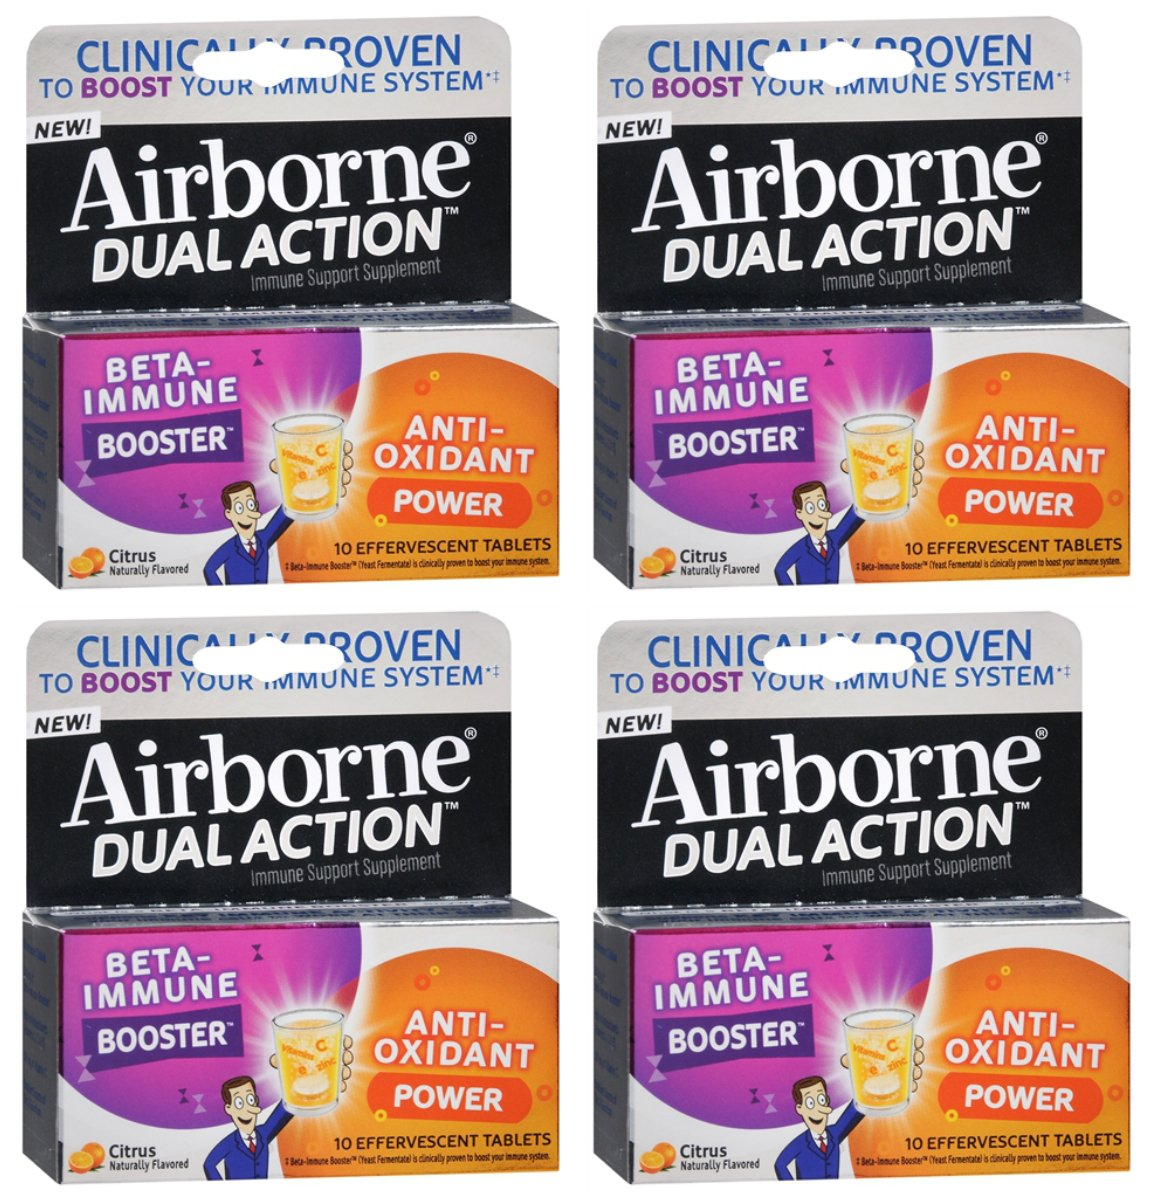 Pack of 4 Airborne Dual Action Beta Immune Booster & Anti-Oxidant Immune Support Supplement, Citrus Effervescent Tablets, 10 Count Each for total of 40 tablets